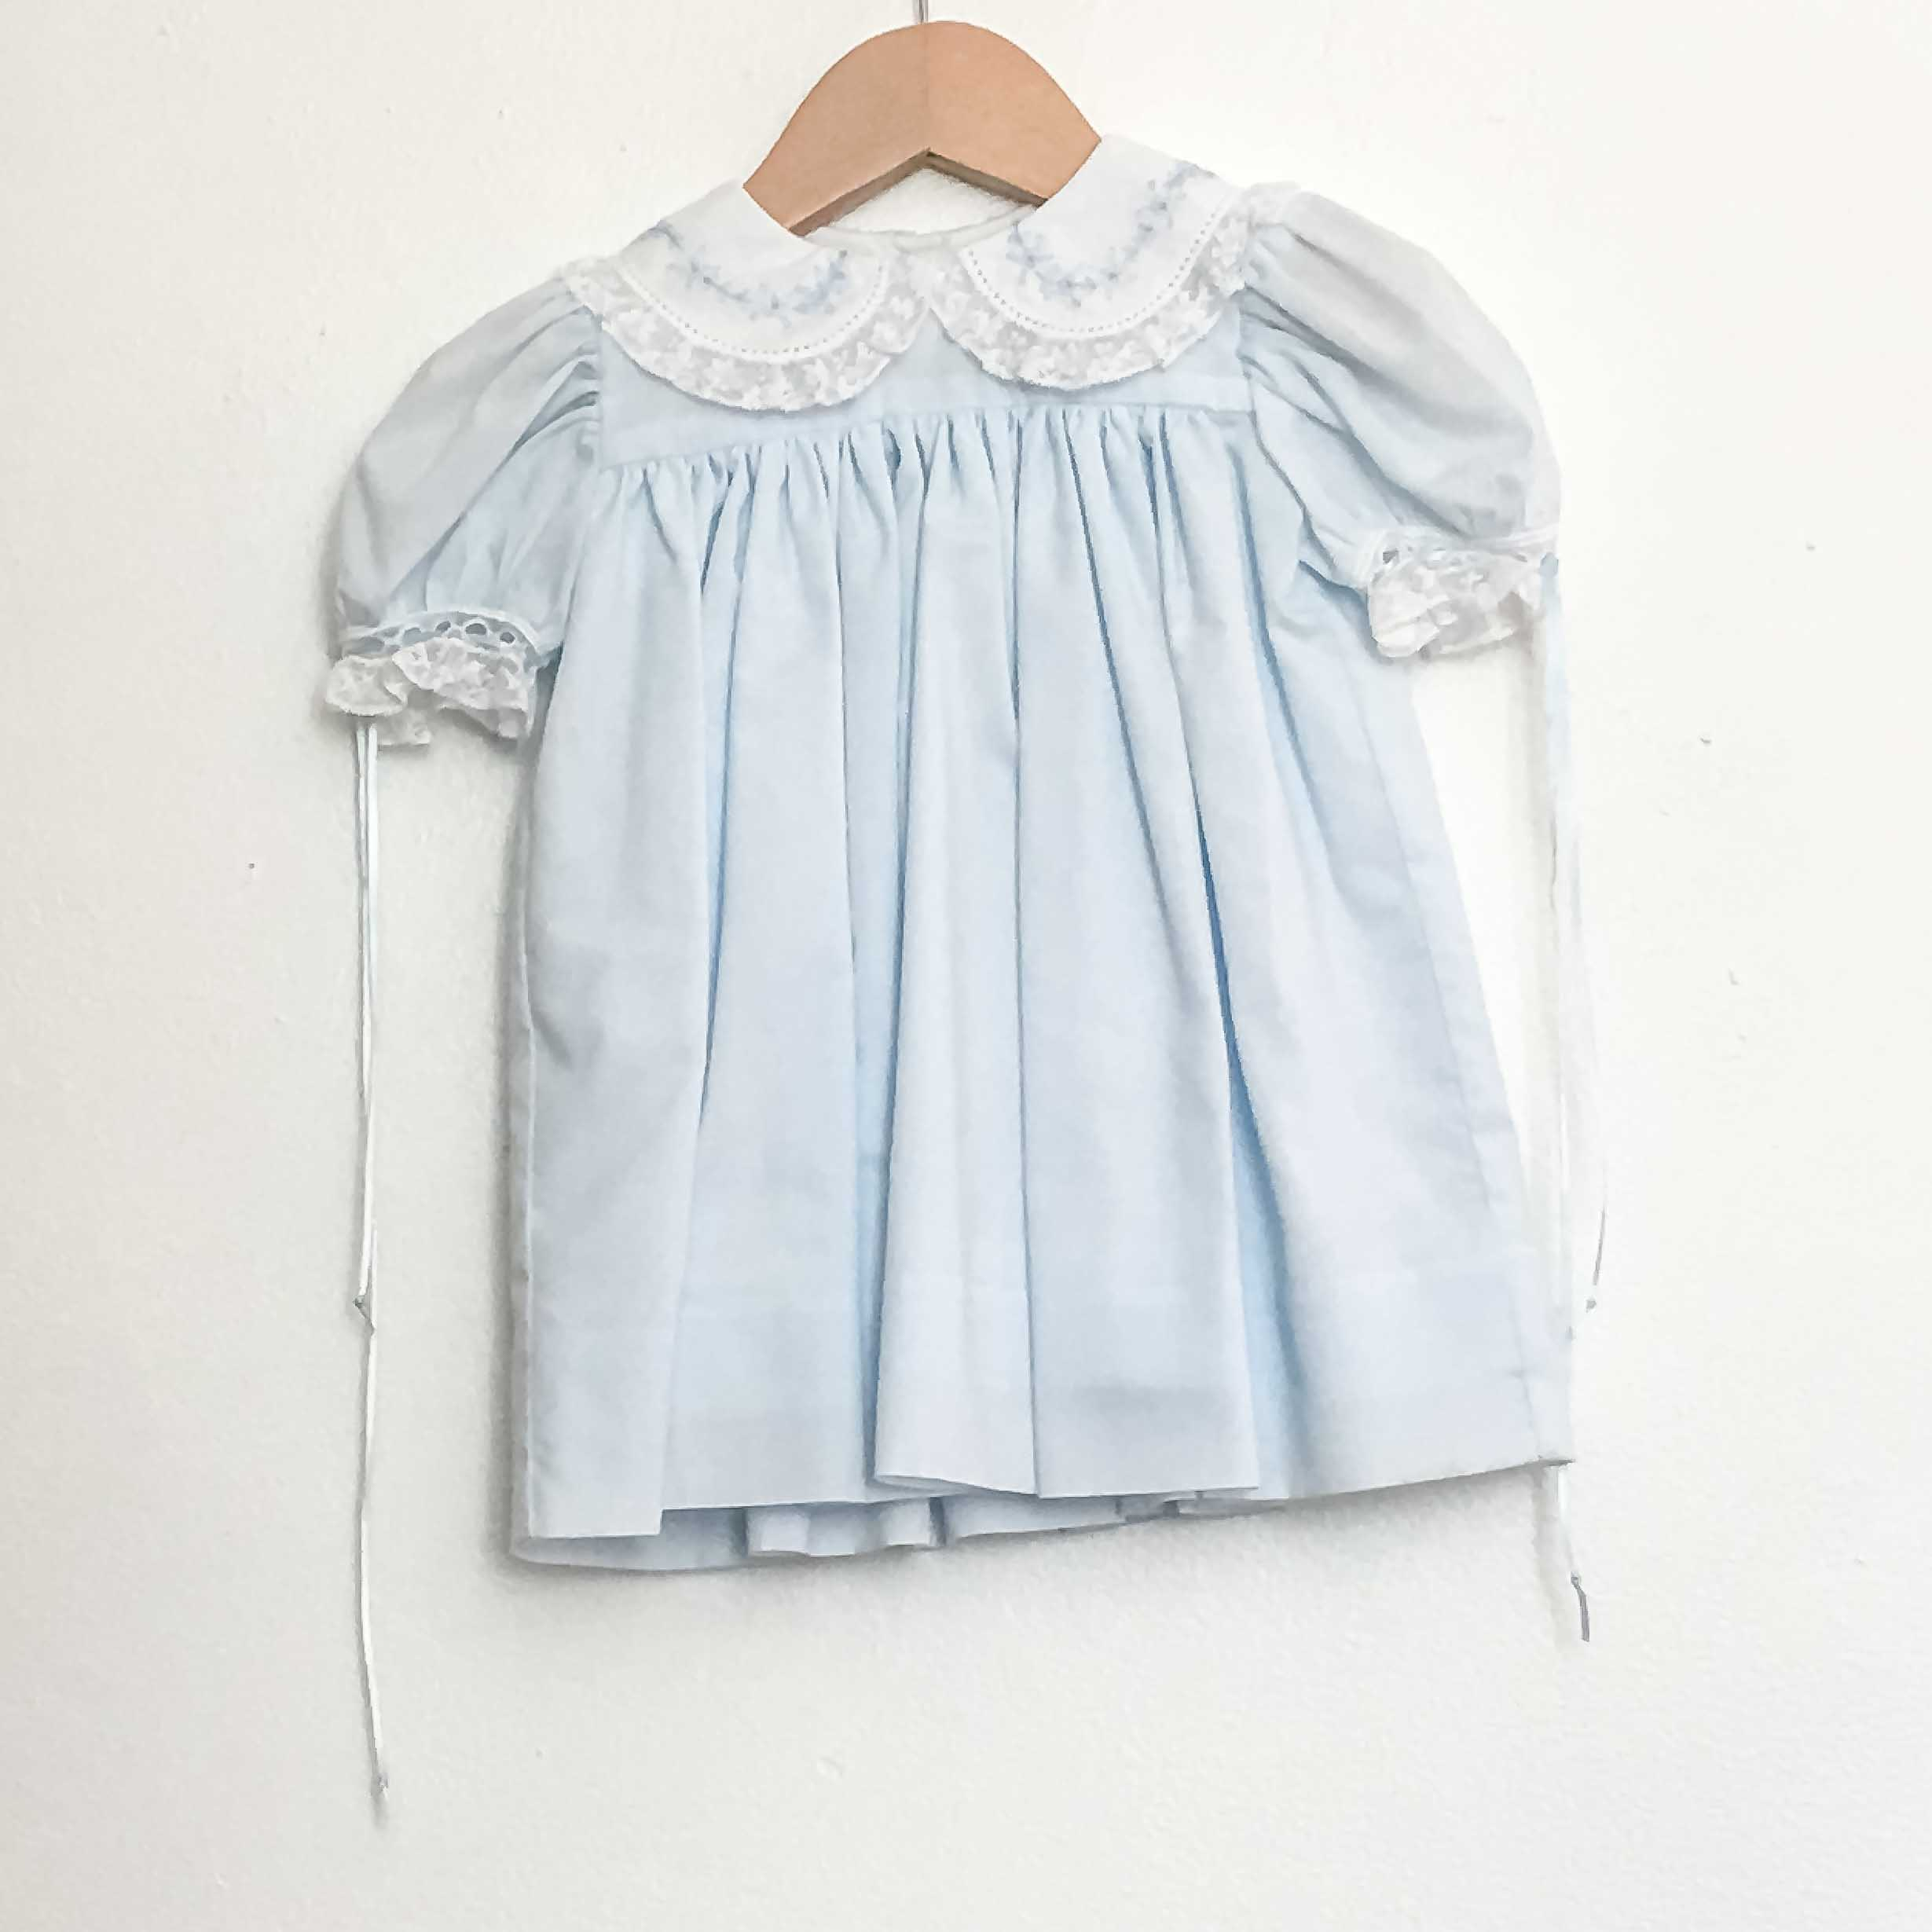 ORPCLOTHES-19.jpg